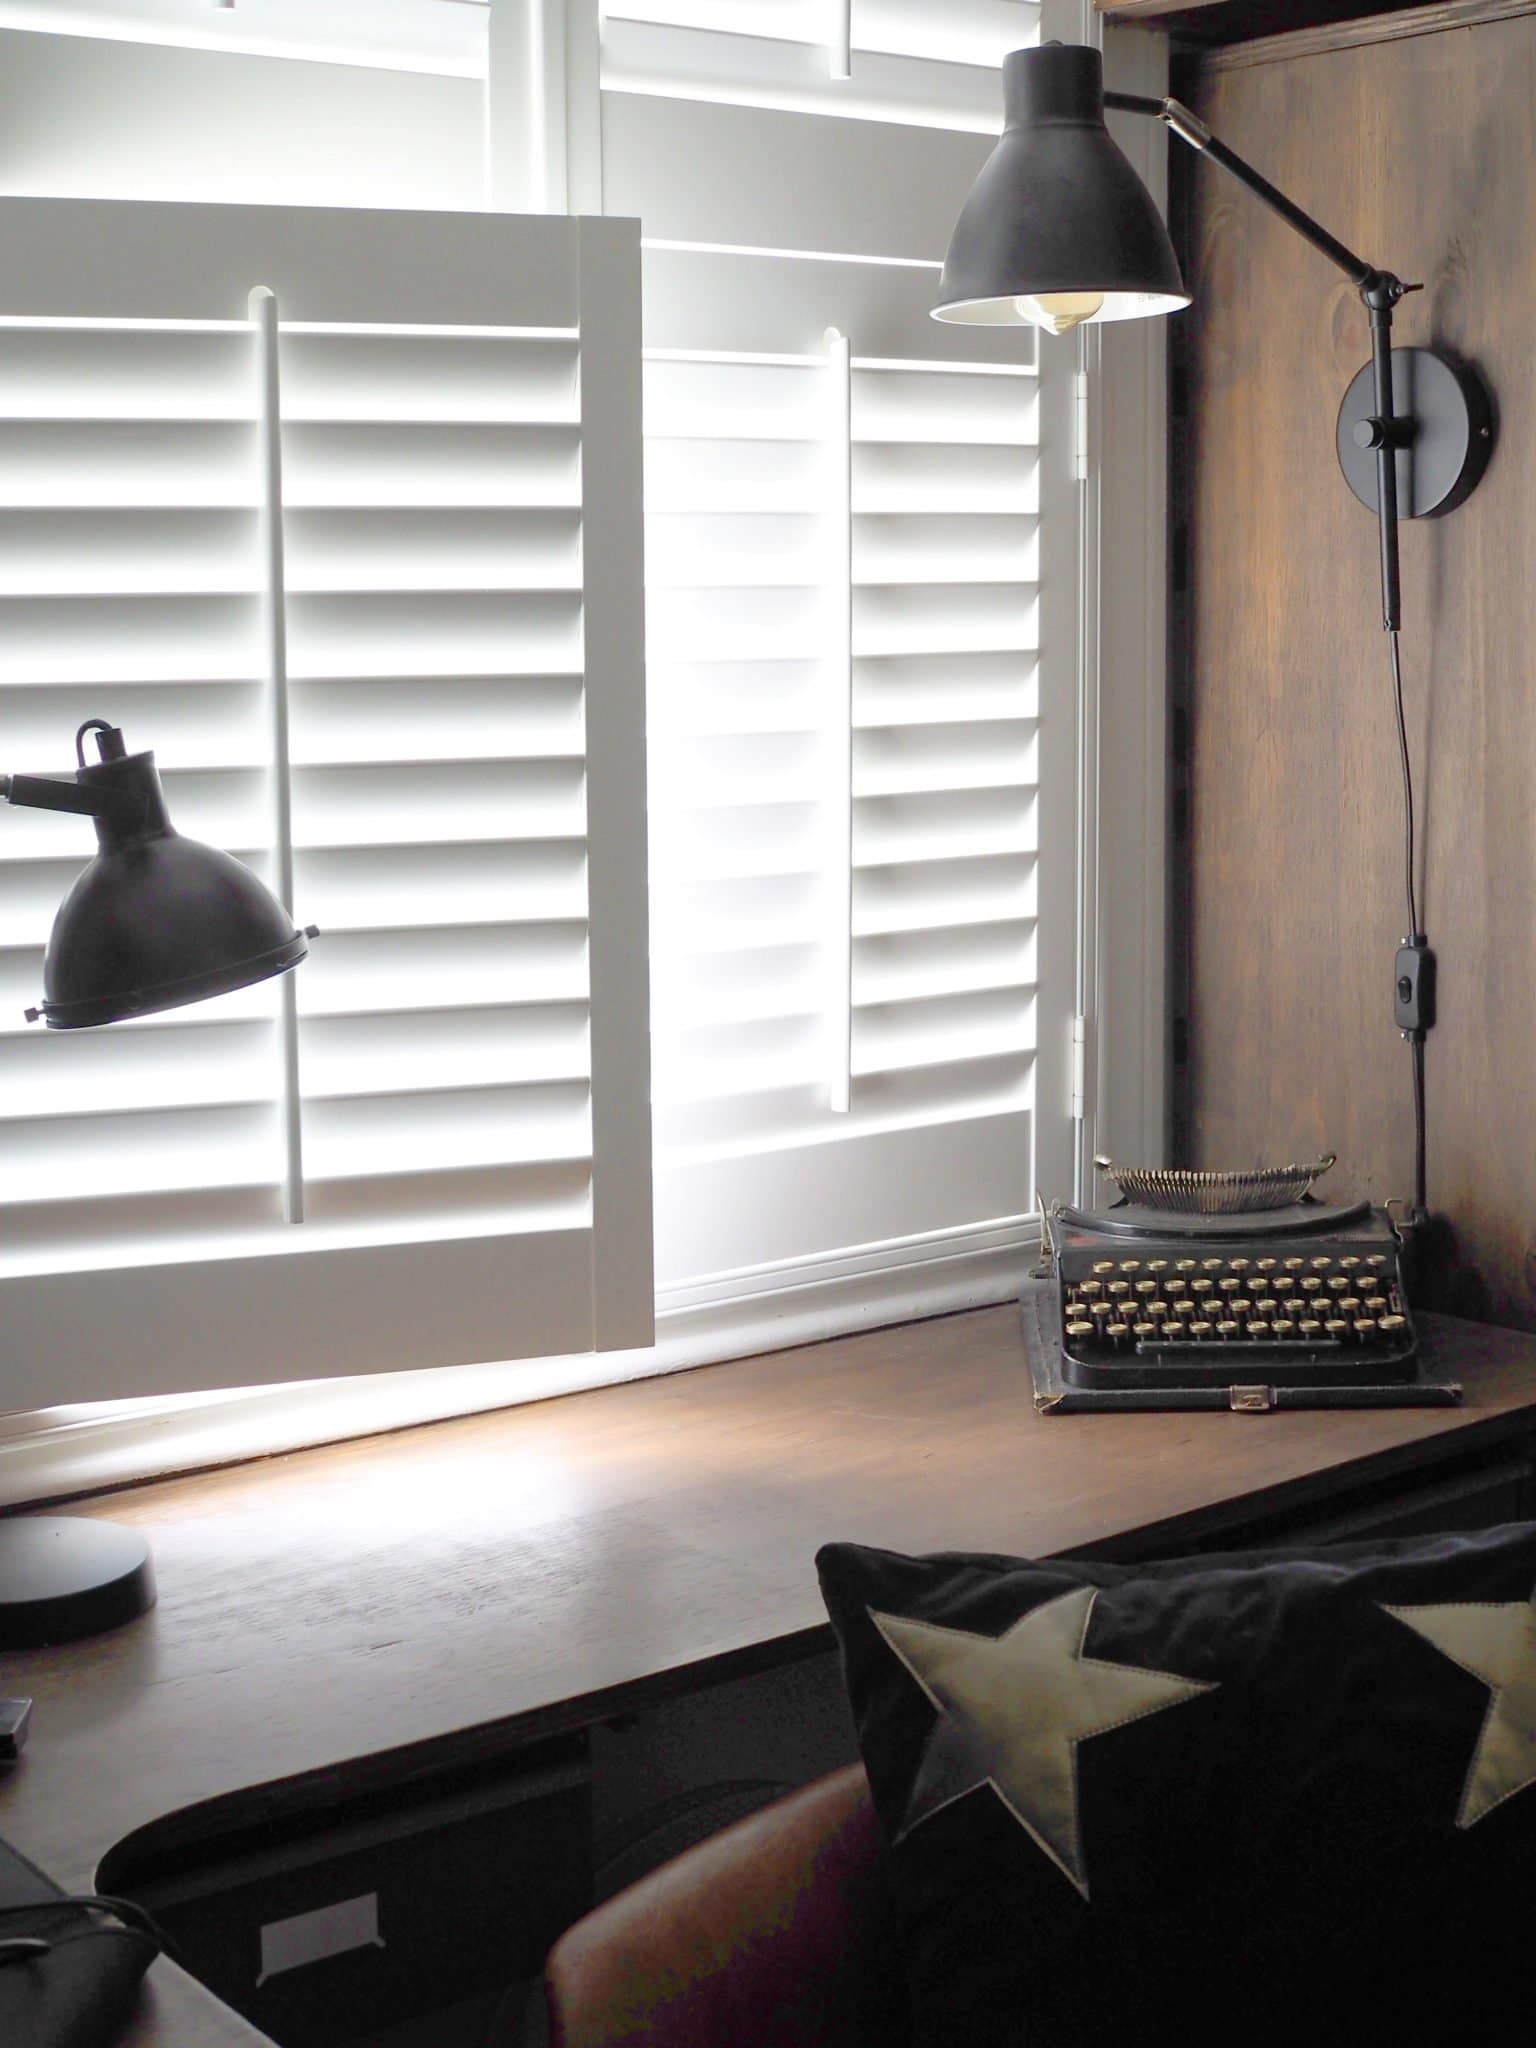 How Easy Is It To Install DIY Shutters